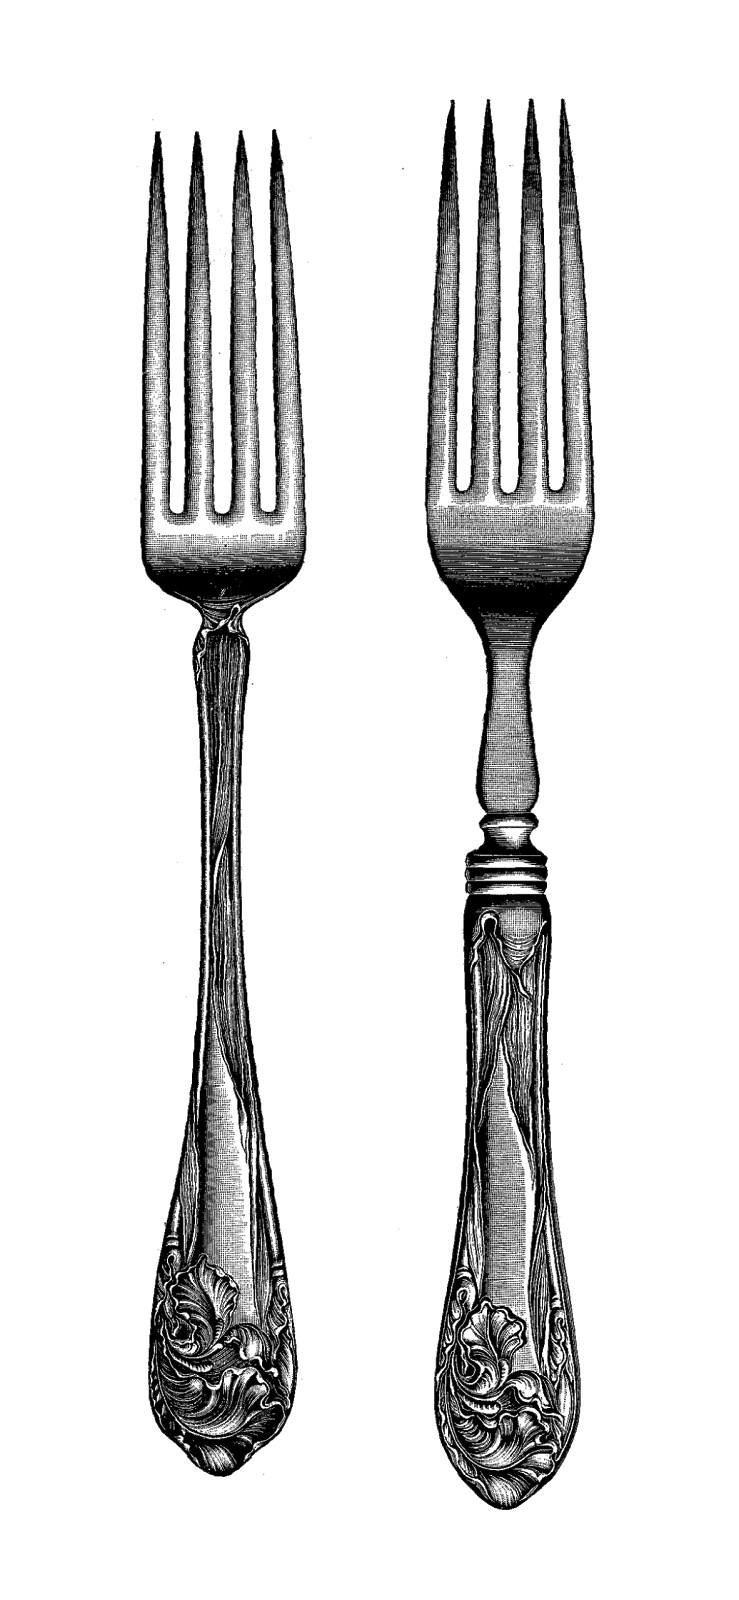 These Are Two Vintage Fork Digital Stamps From A 1913 Hardware Catalog. I  Love The Fancy, Decorative Handles! Theyu0027re So Elegant. - Fancy Fork PNG Black And White